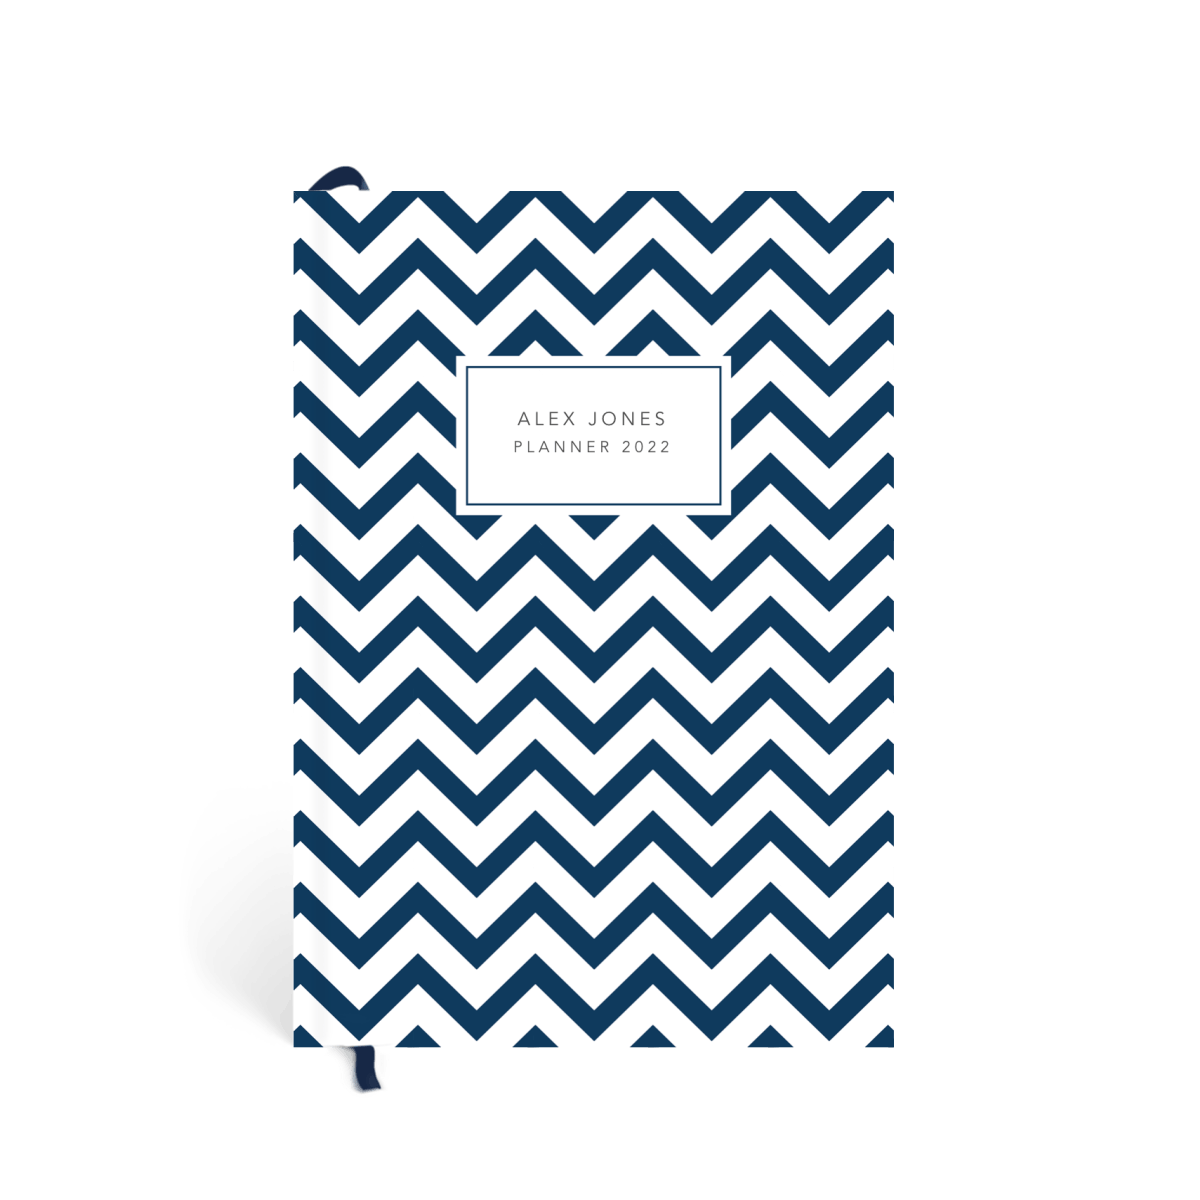 Https%3a%2f%2fwww.papier.com%2fproduct image%2f52024%2f36%2fnavy chevrons 12137 front 1562670441.png?ixlib=rb 1.1